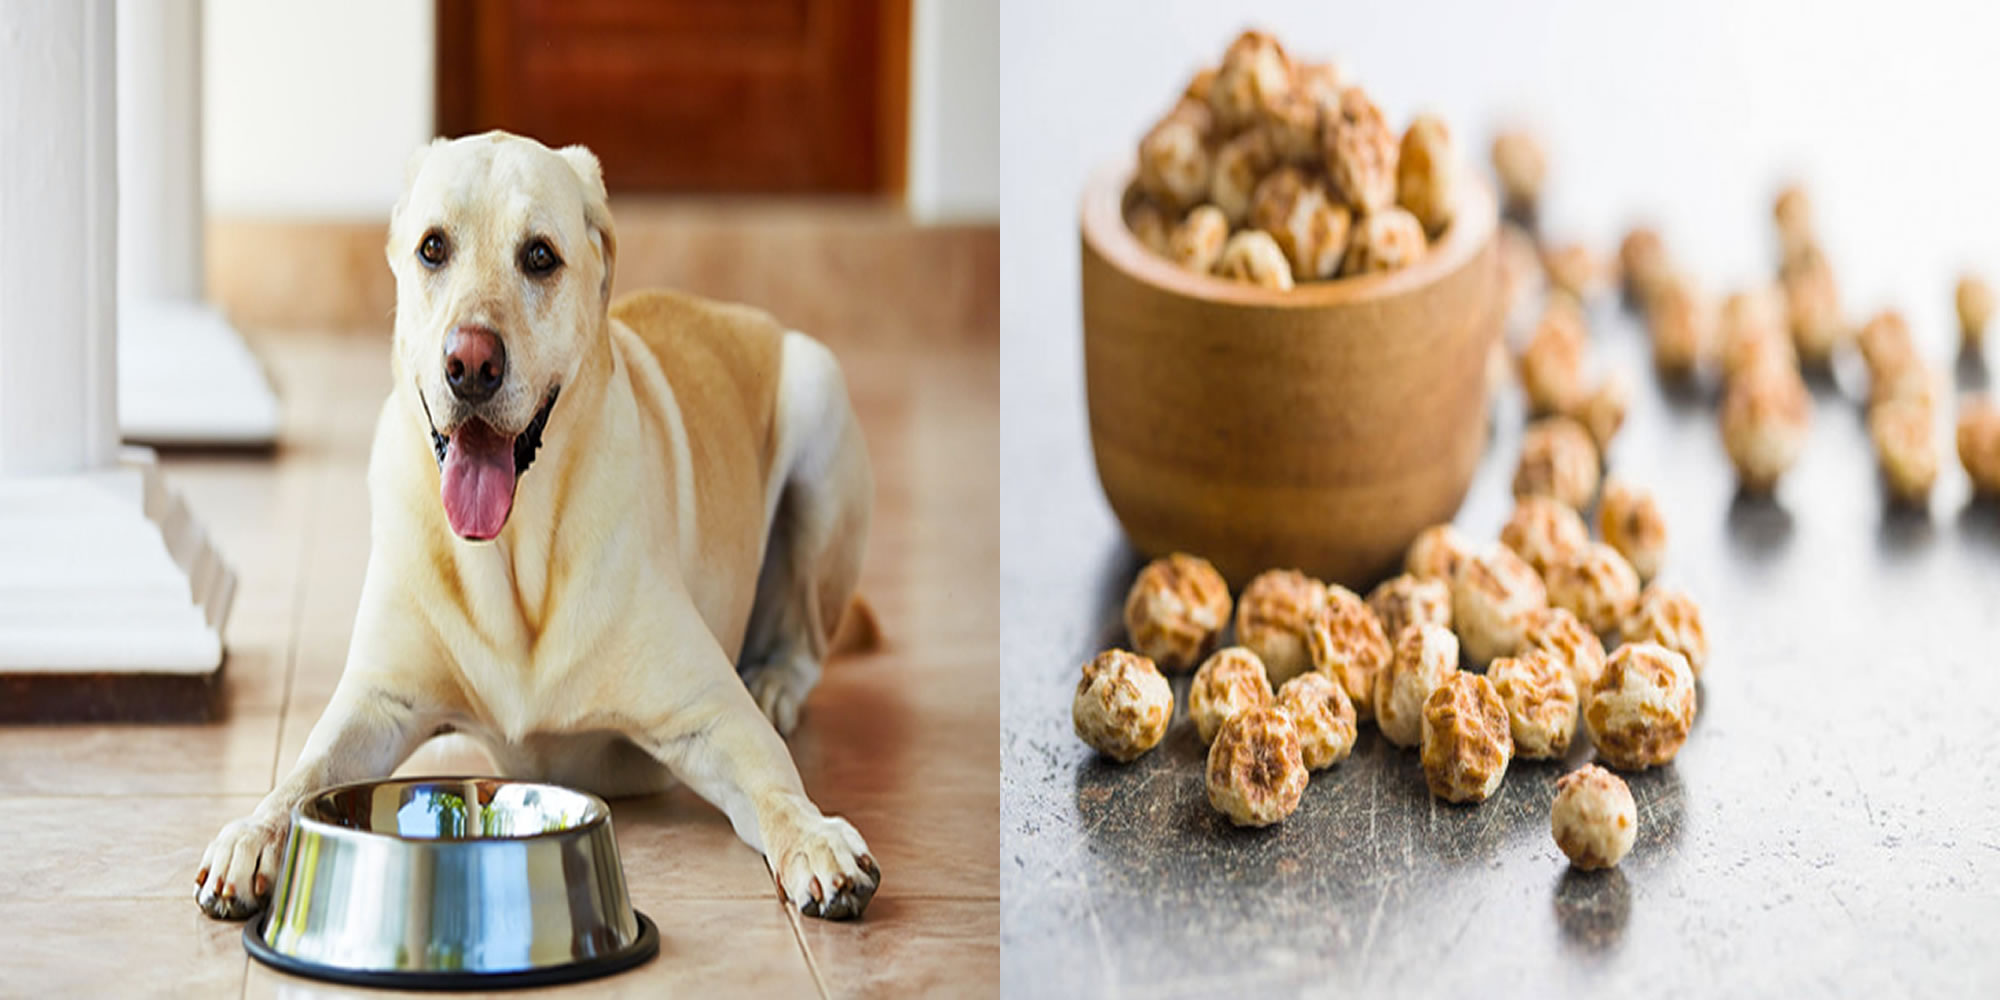 Are Tiger Nuts Safe For Dogs?